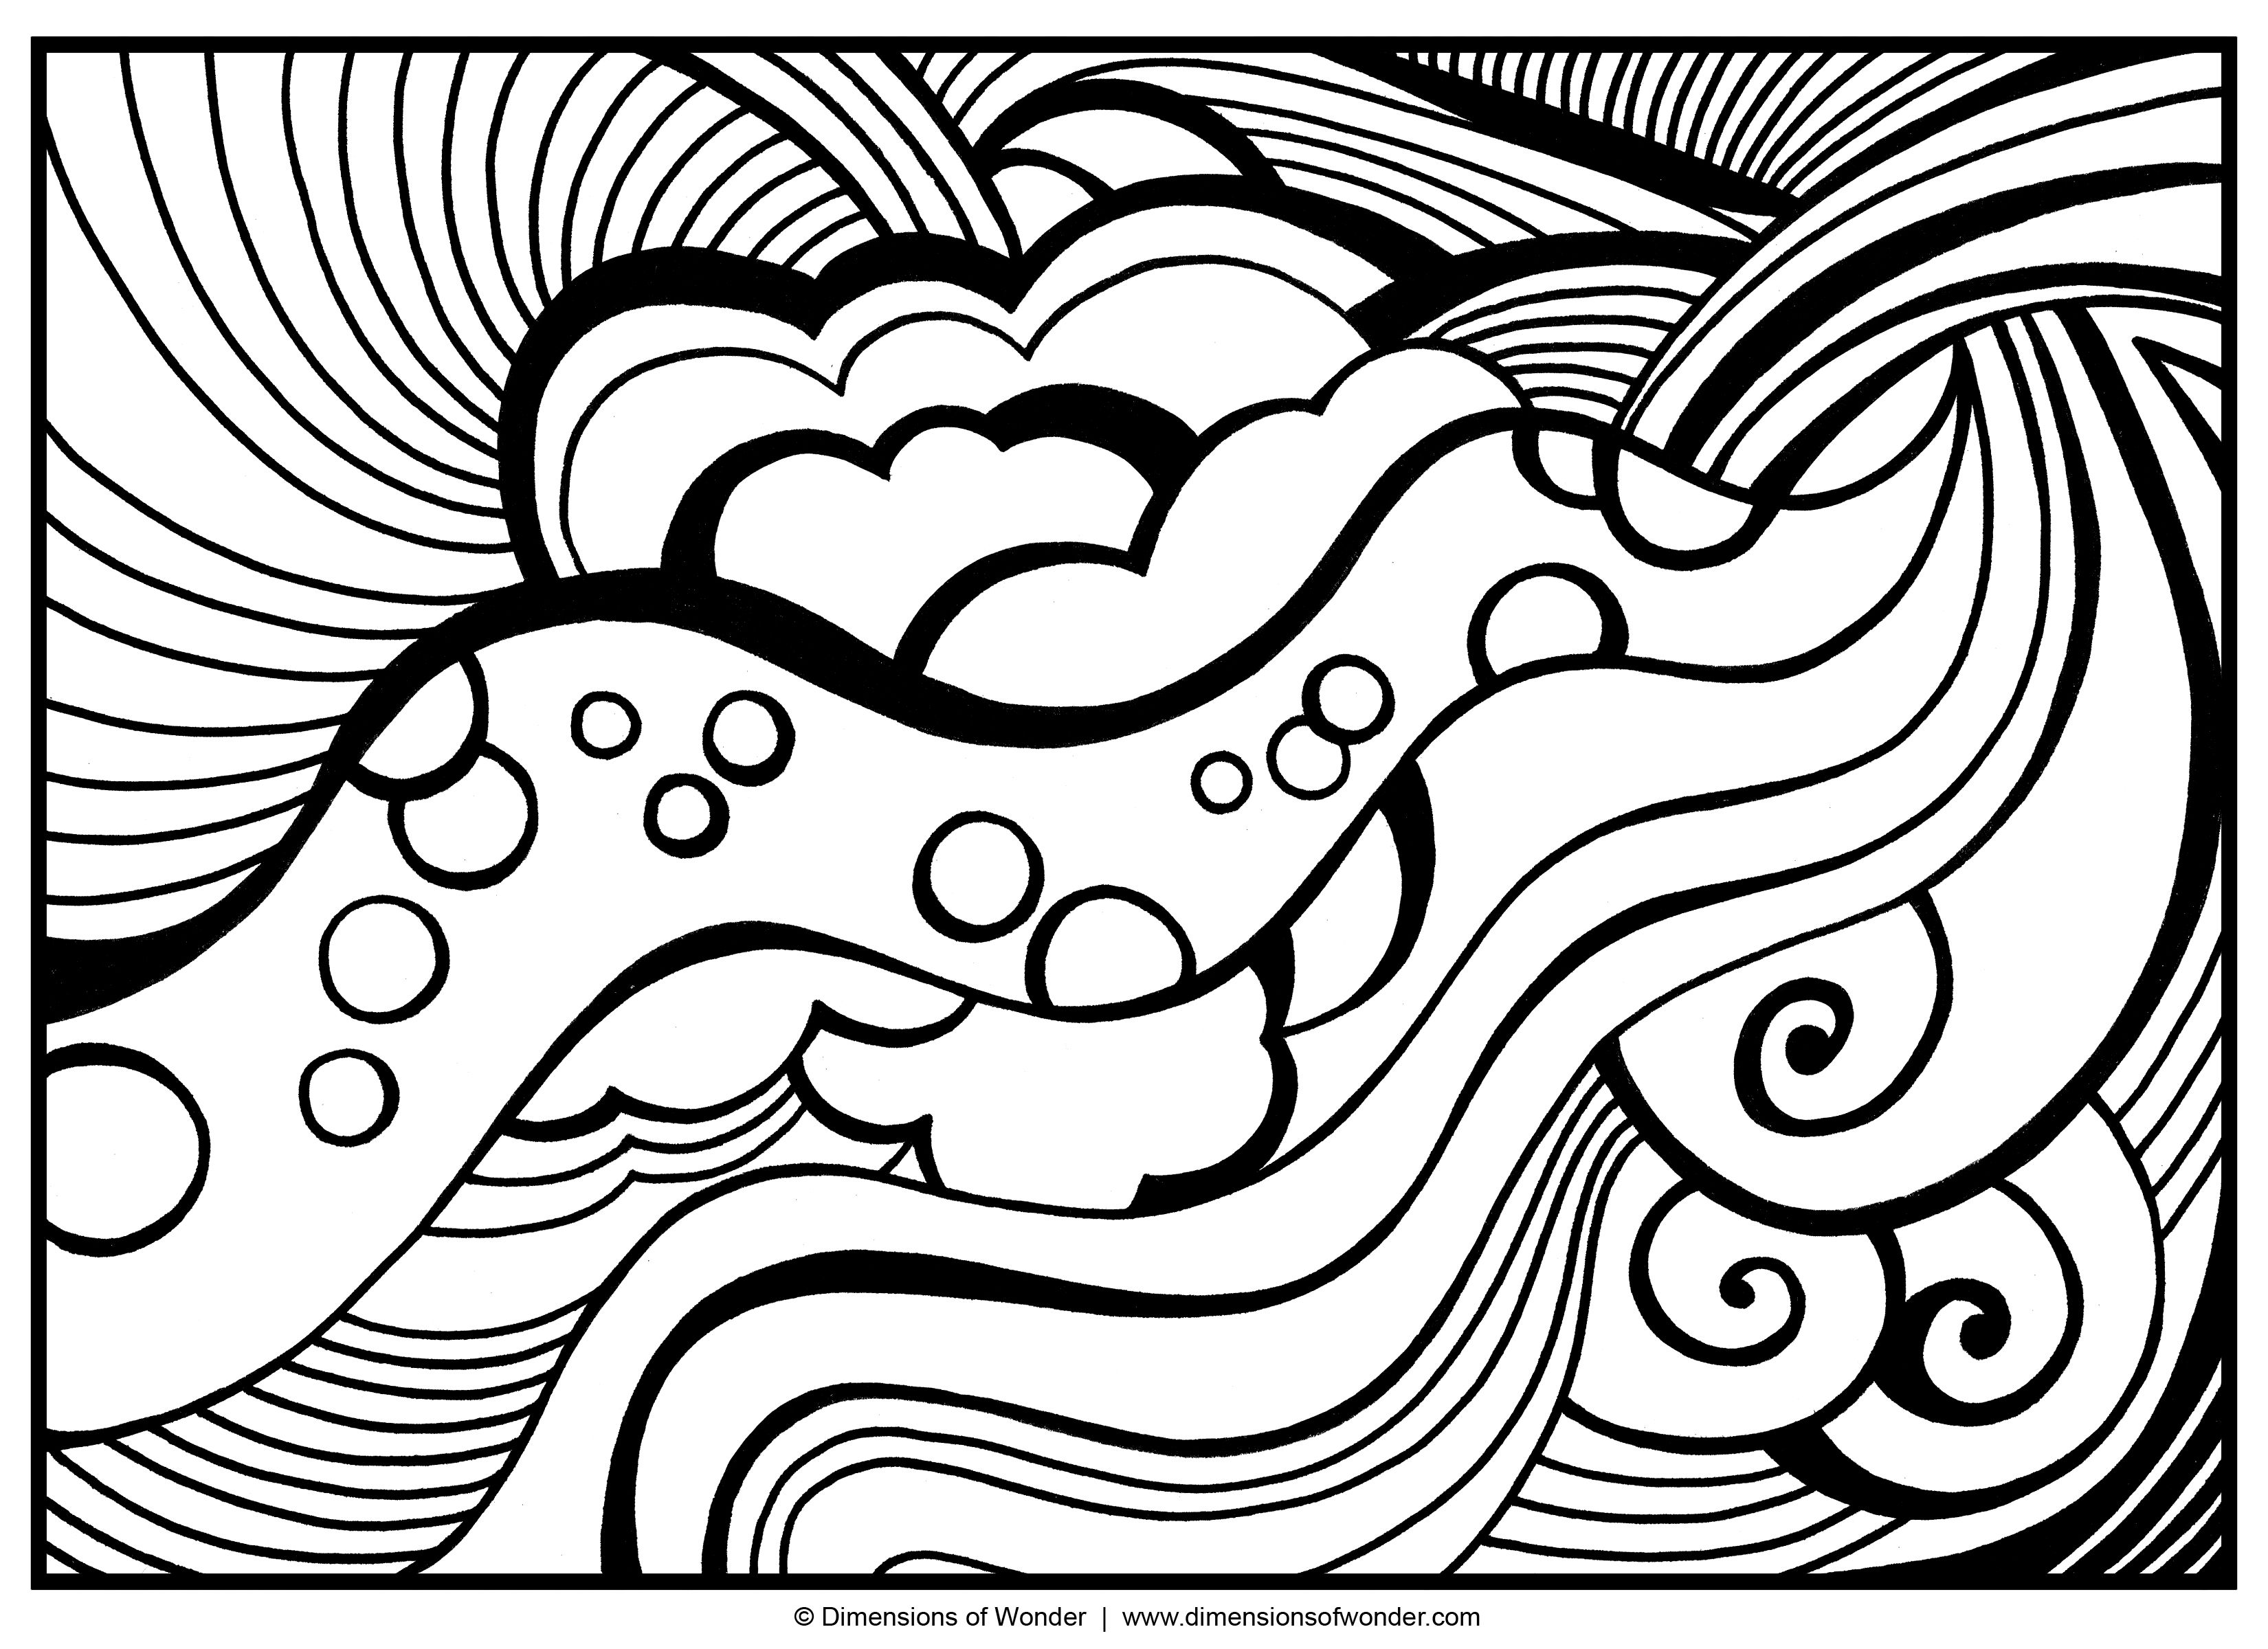 abstract coloring page # 2